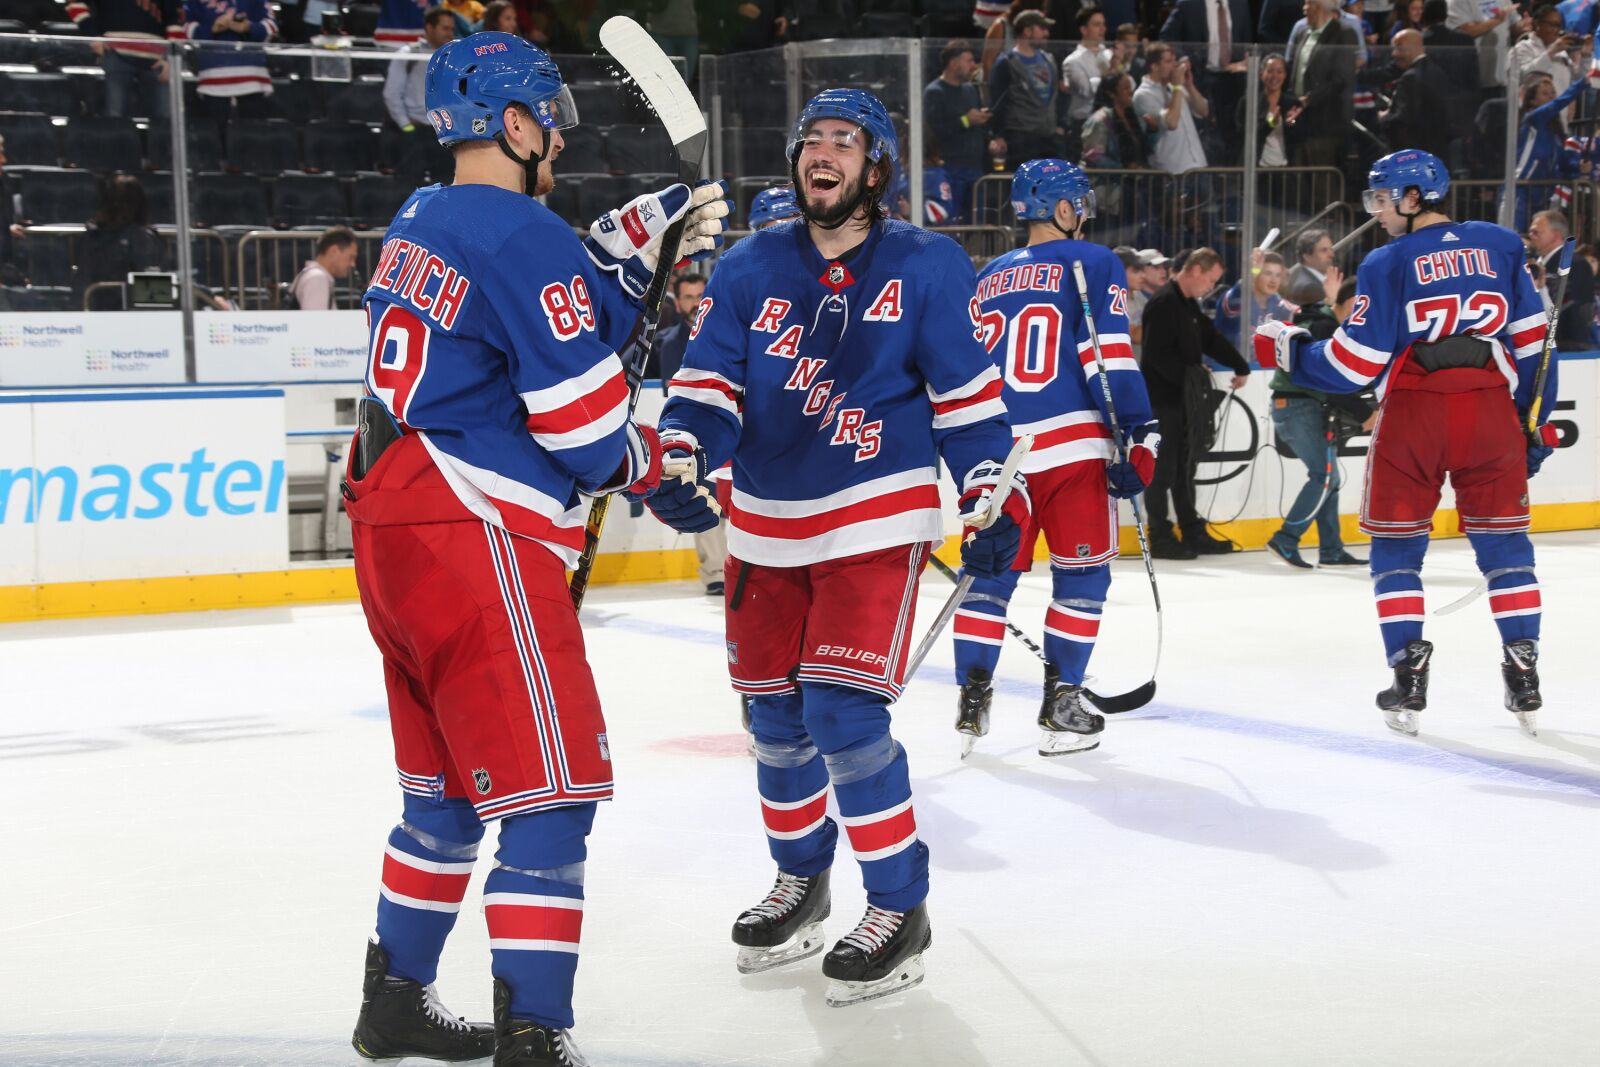 New York Rangers: Pros and cons of a top-heavy lineup